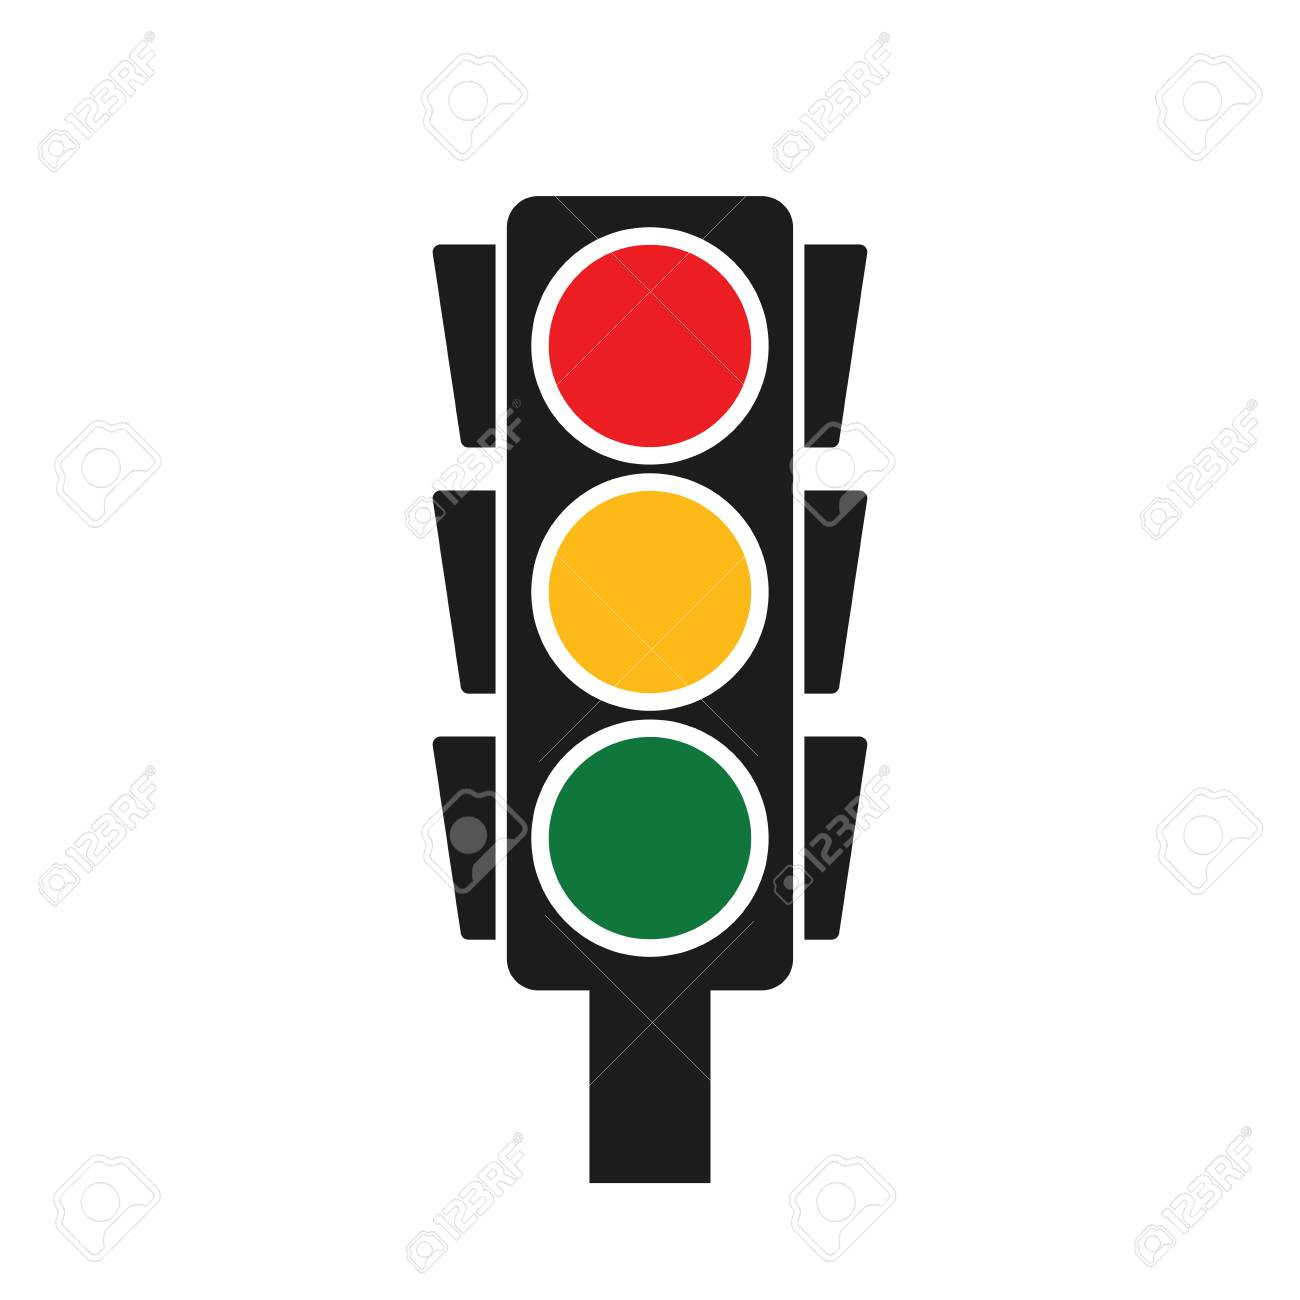 traffic light vector royalty free cliparts vectors and stock illustration image 93716026 traffic light vector